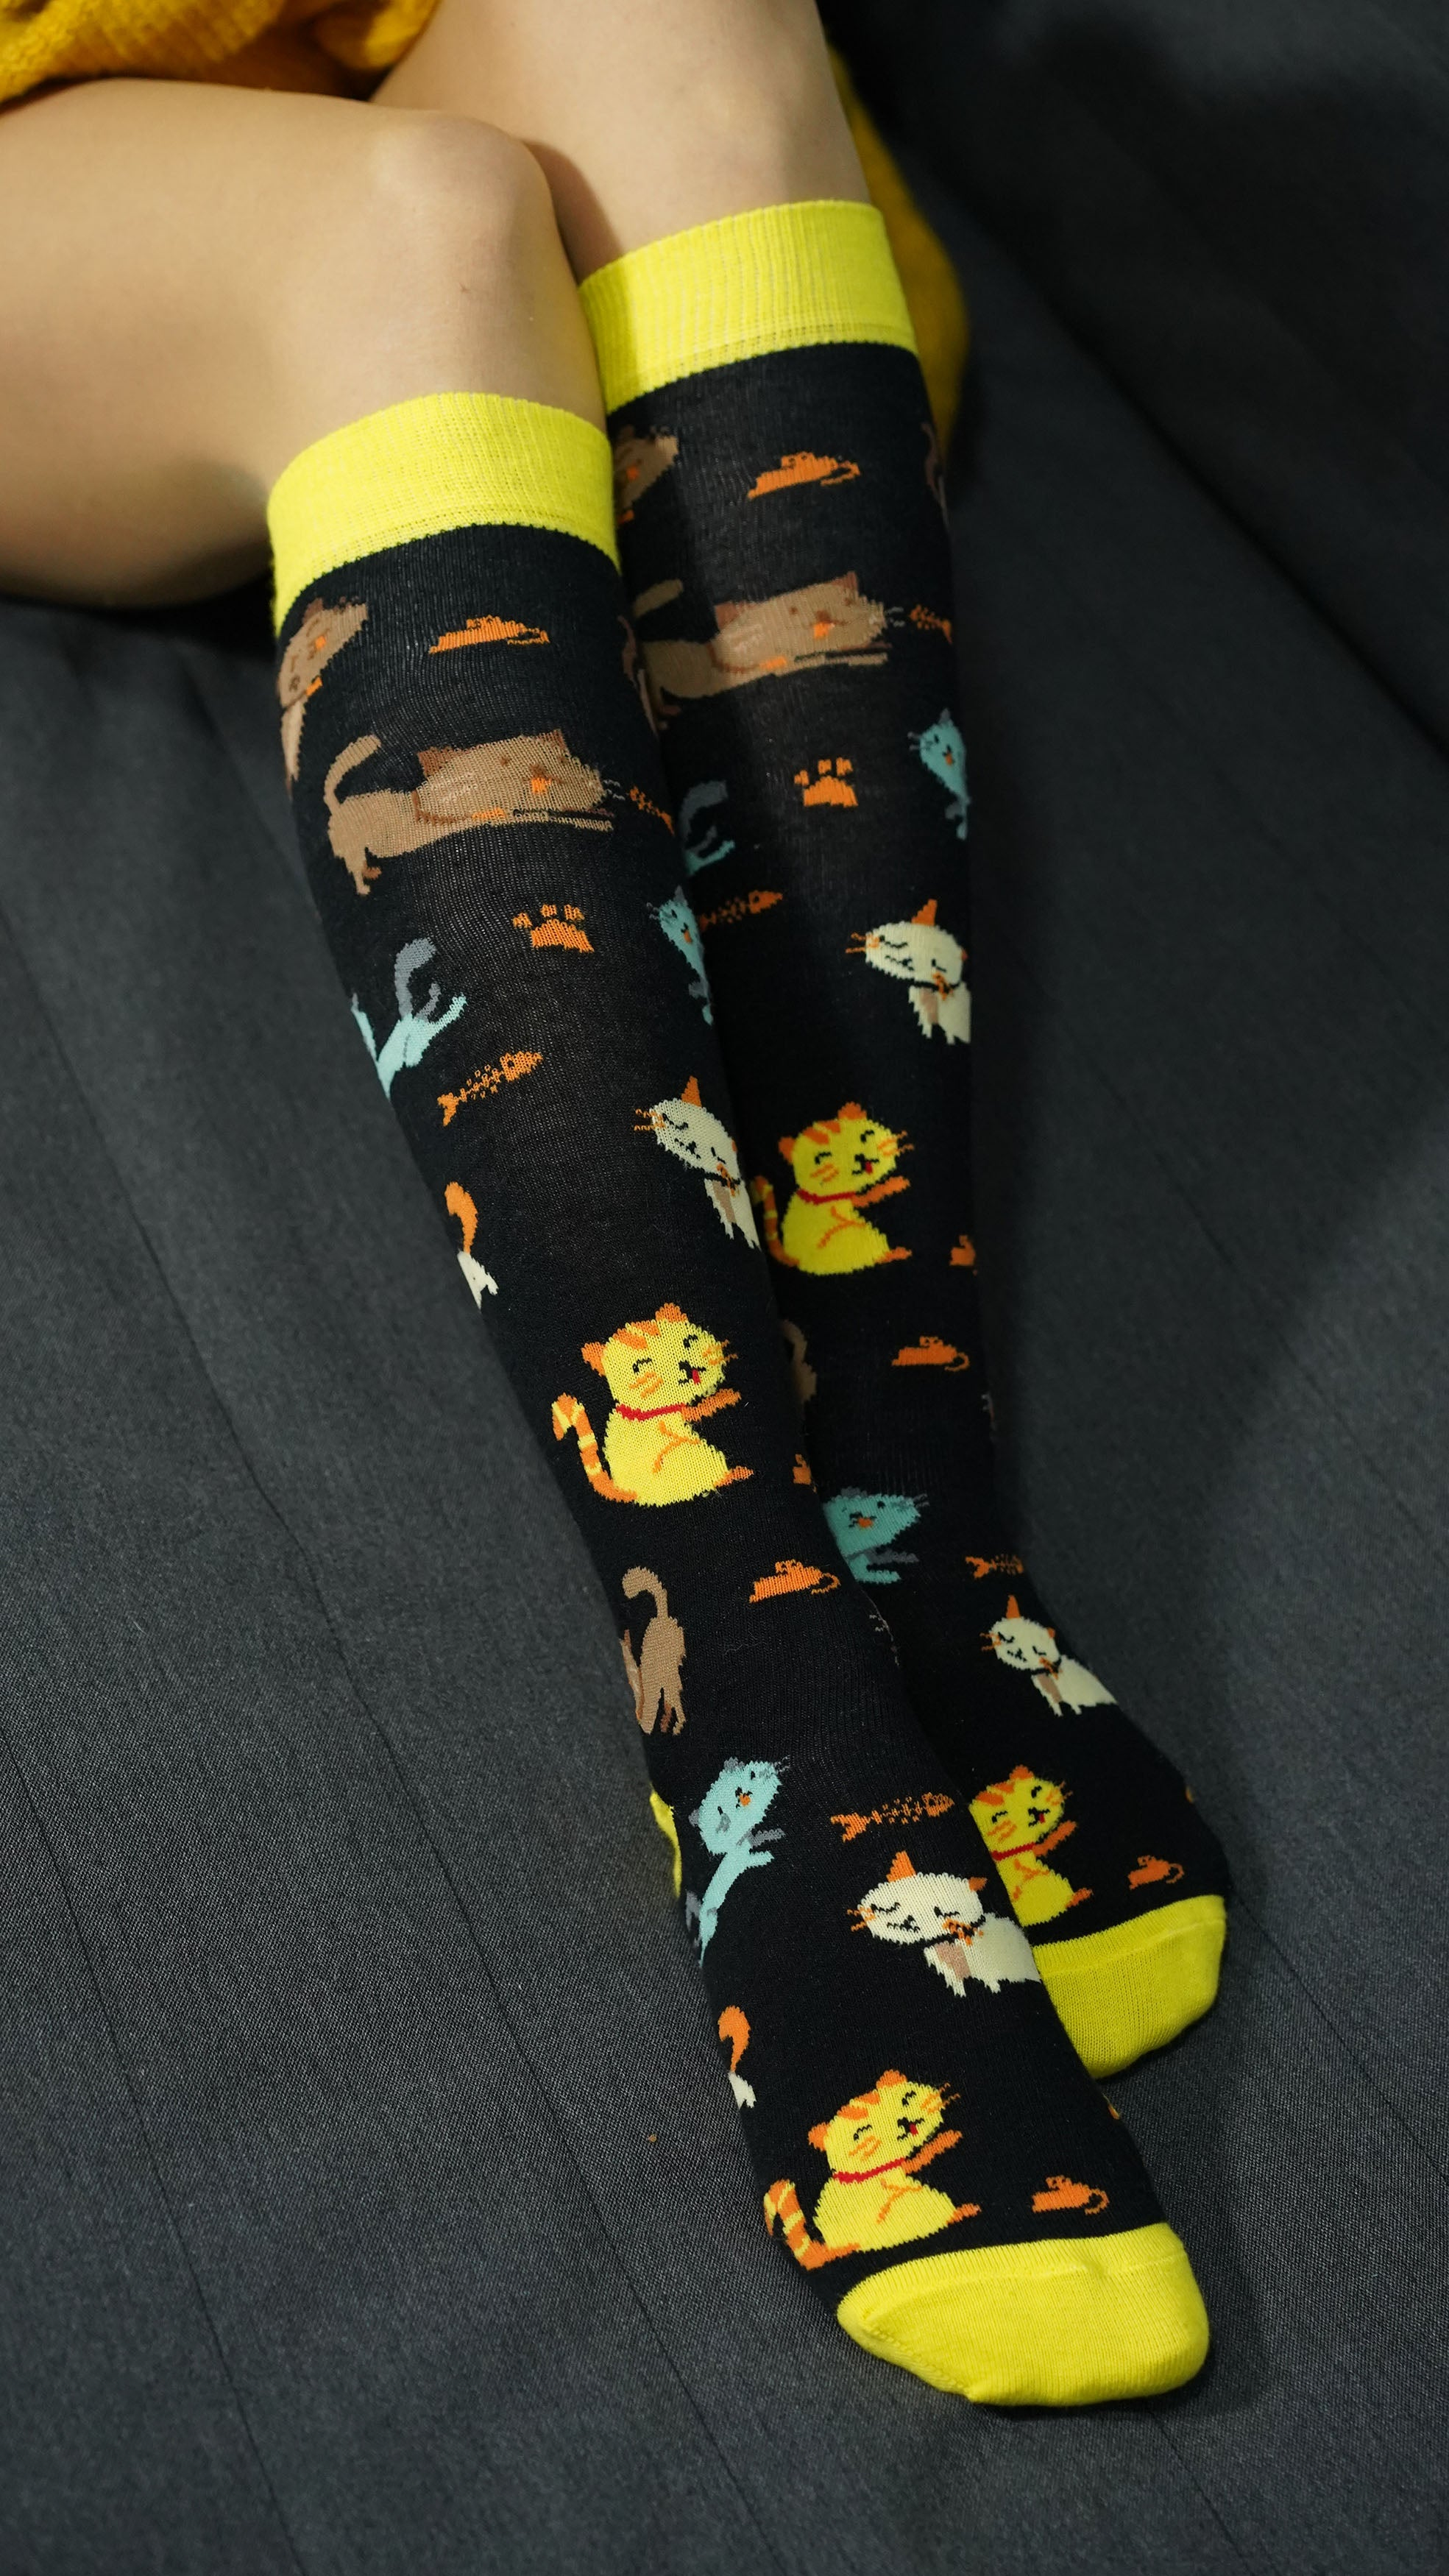 Women's Kittens Knee High Socks